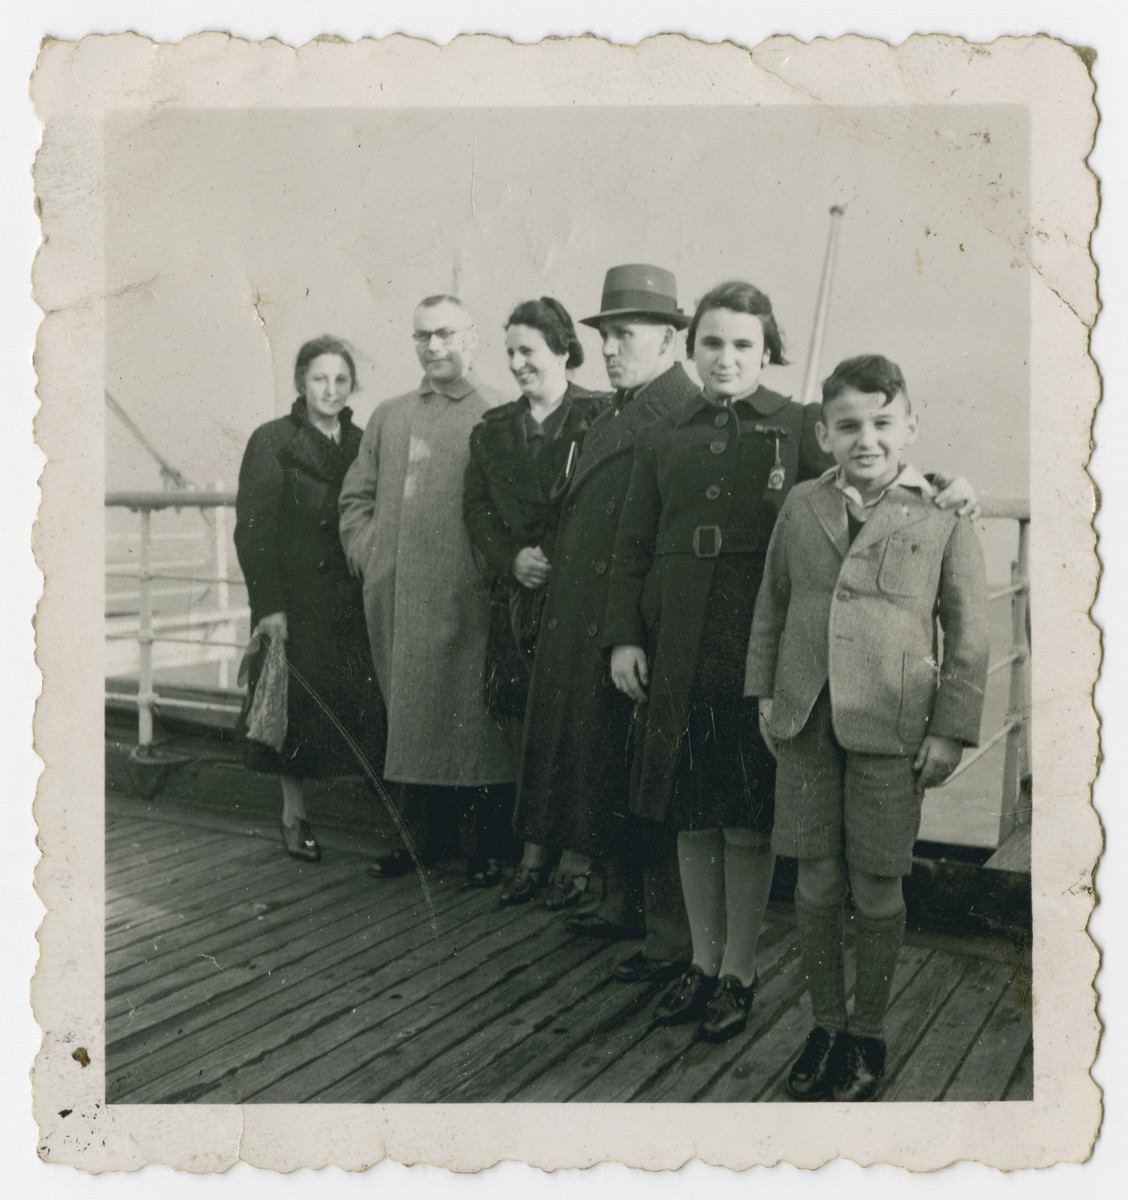 The Tager on board the Rotterdam ship to Cuba.   From Left to Right: Unkown, Unkown, Fanny Tager, Jacob Tager, Doris Tager, and Henry Tager.